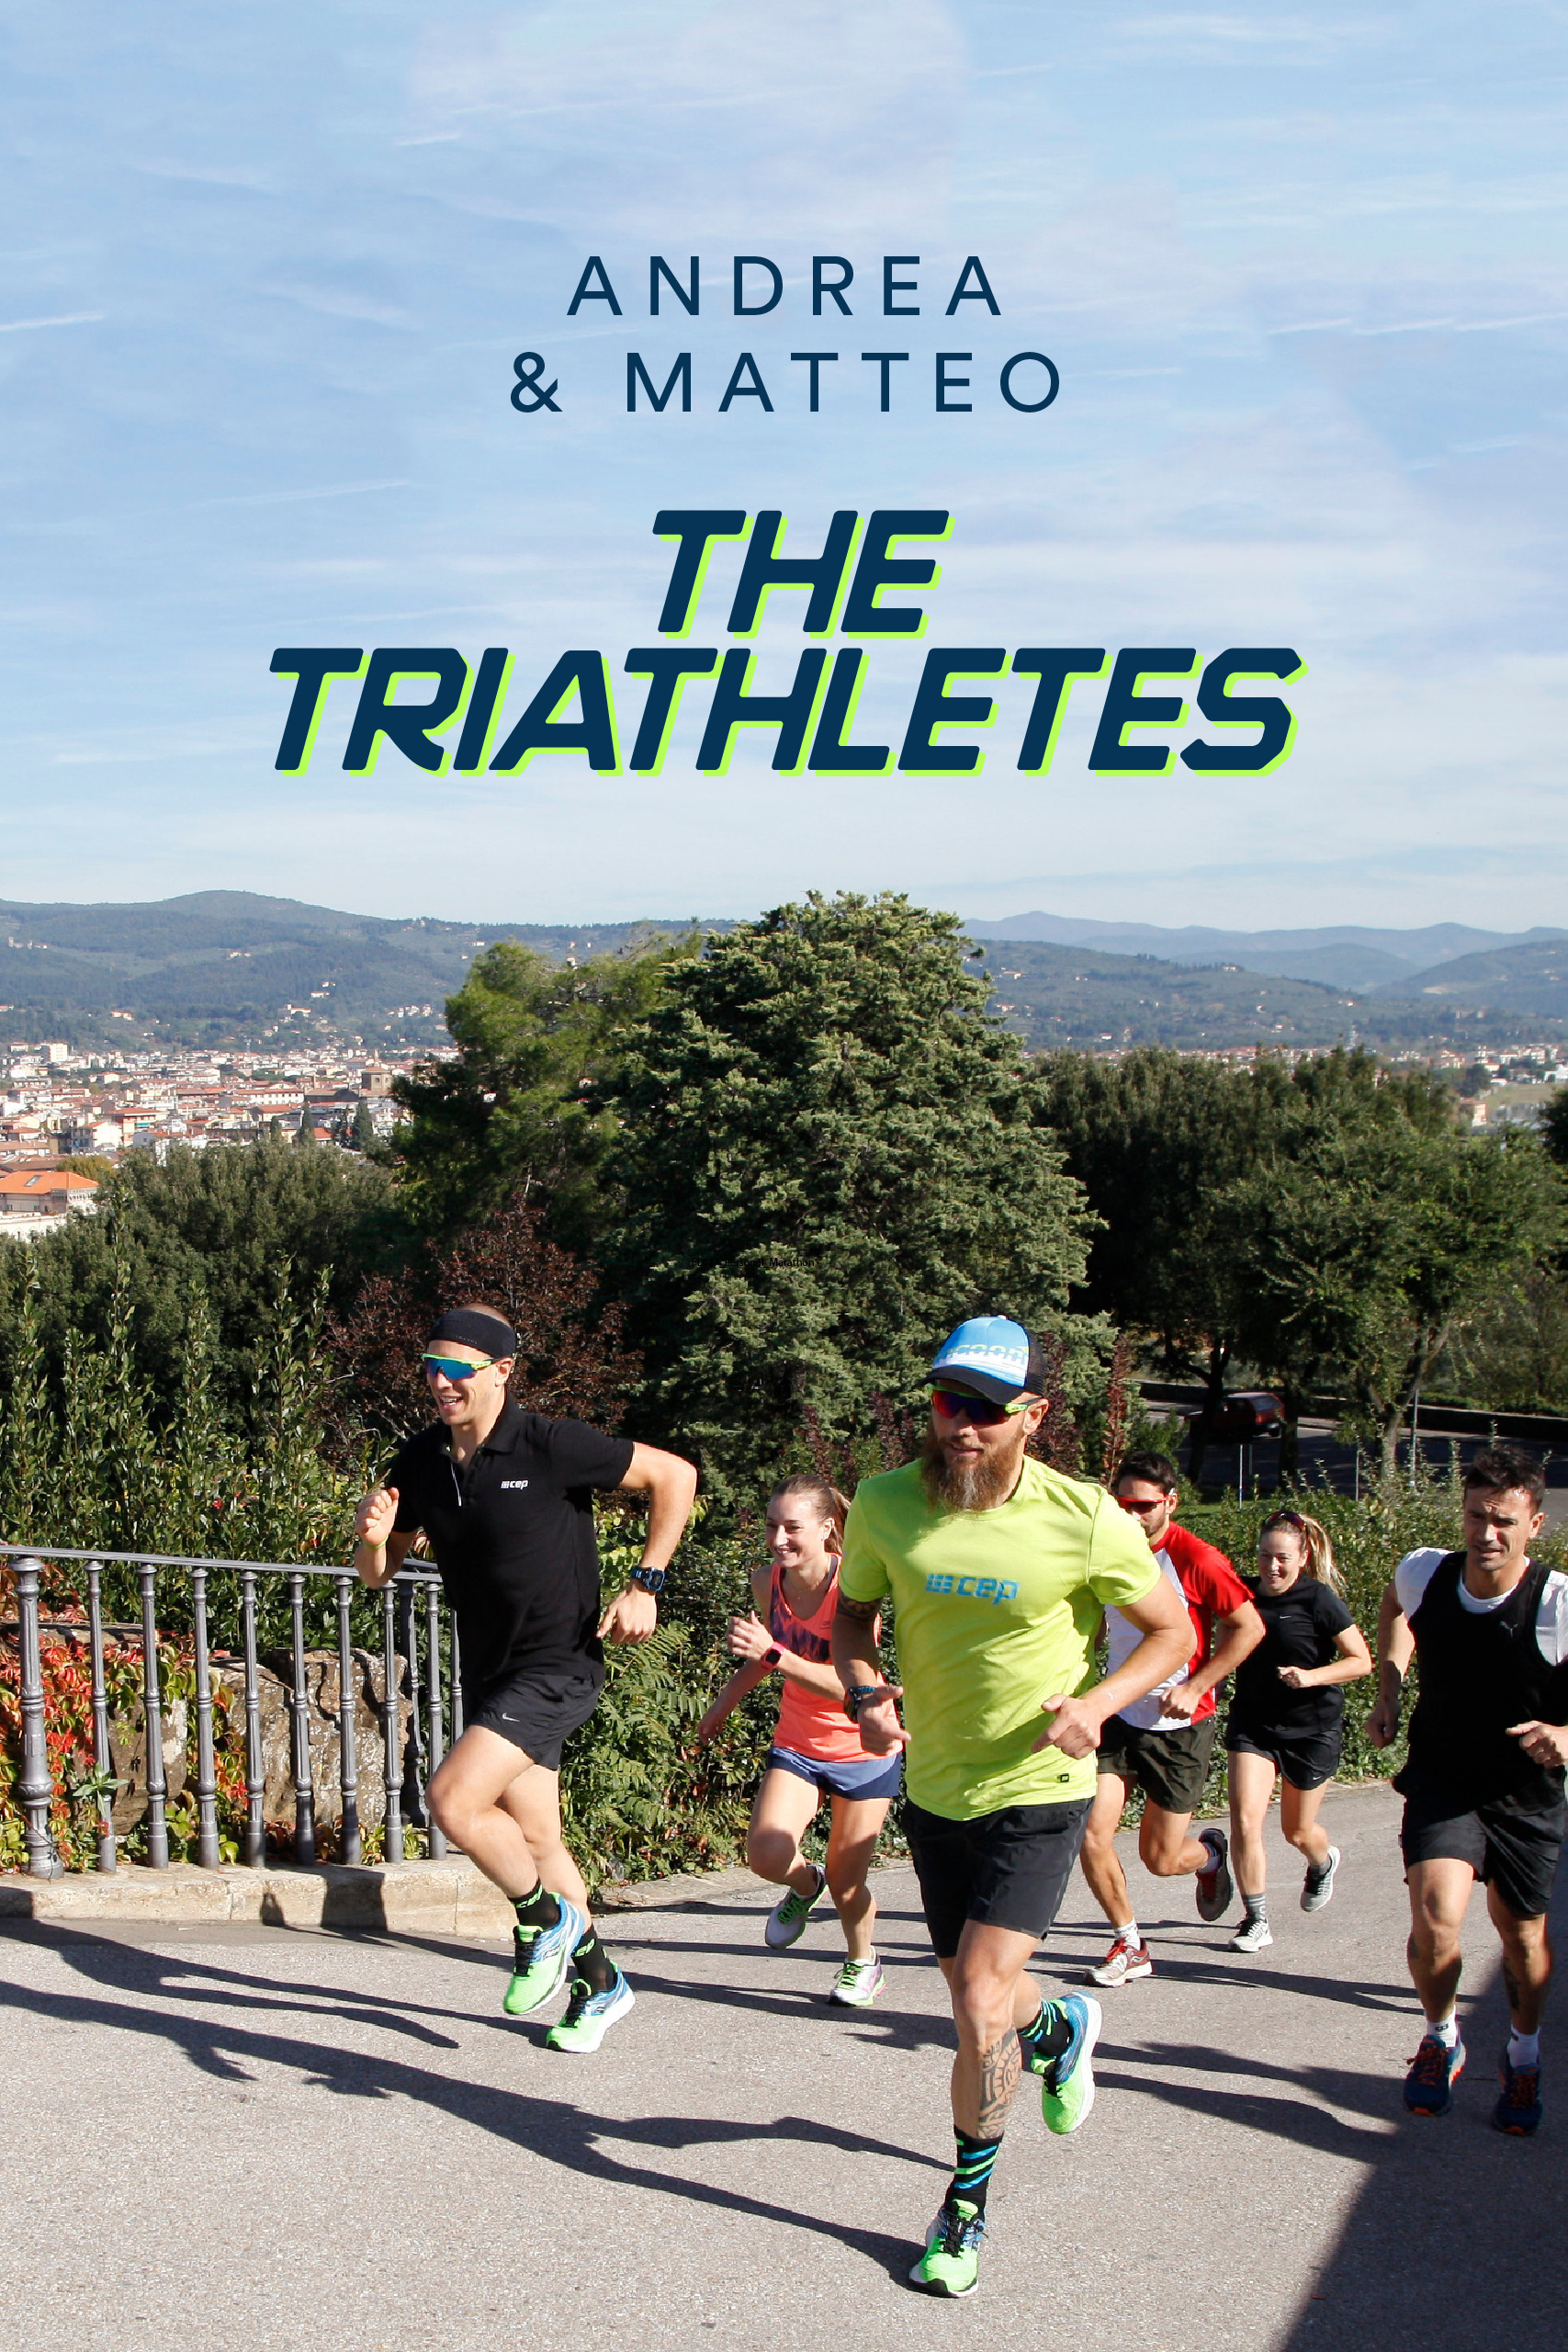 Florence Experience – Andrea & Matteo, The Triathletes 1